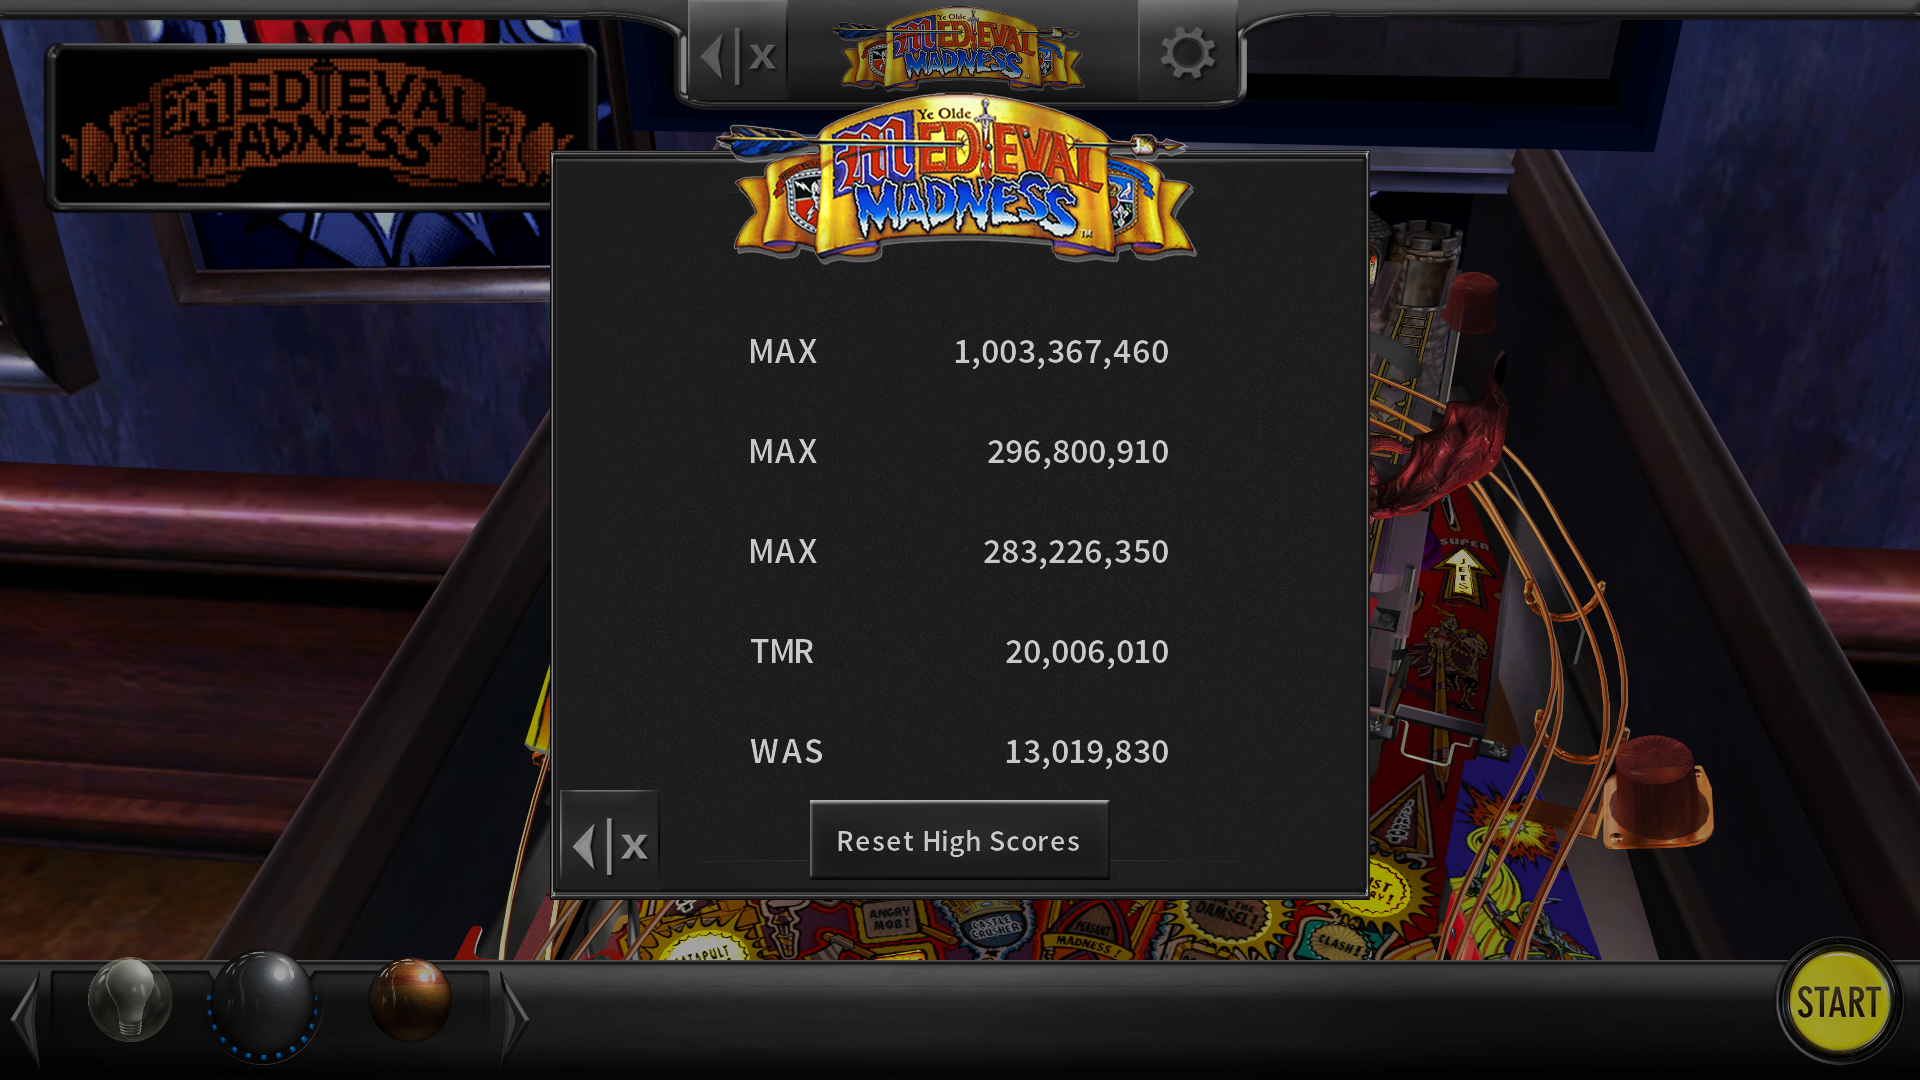 maxgreat: Pinball Arcade: Medieval Madness (PC) 1,003,367,460 points on 2018-03-01 04:27:49